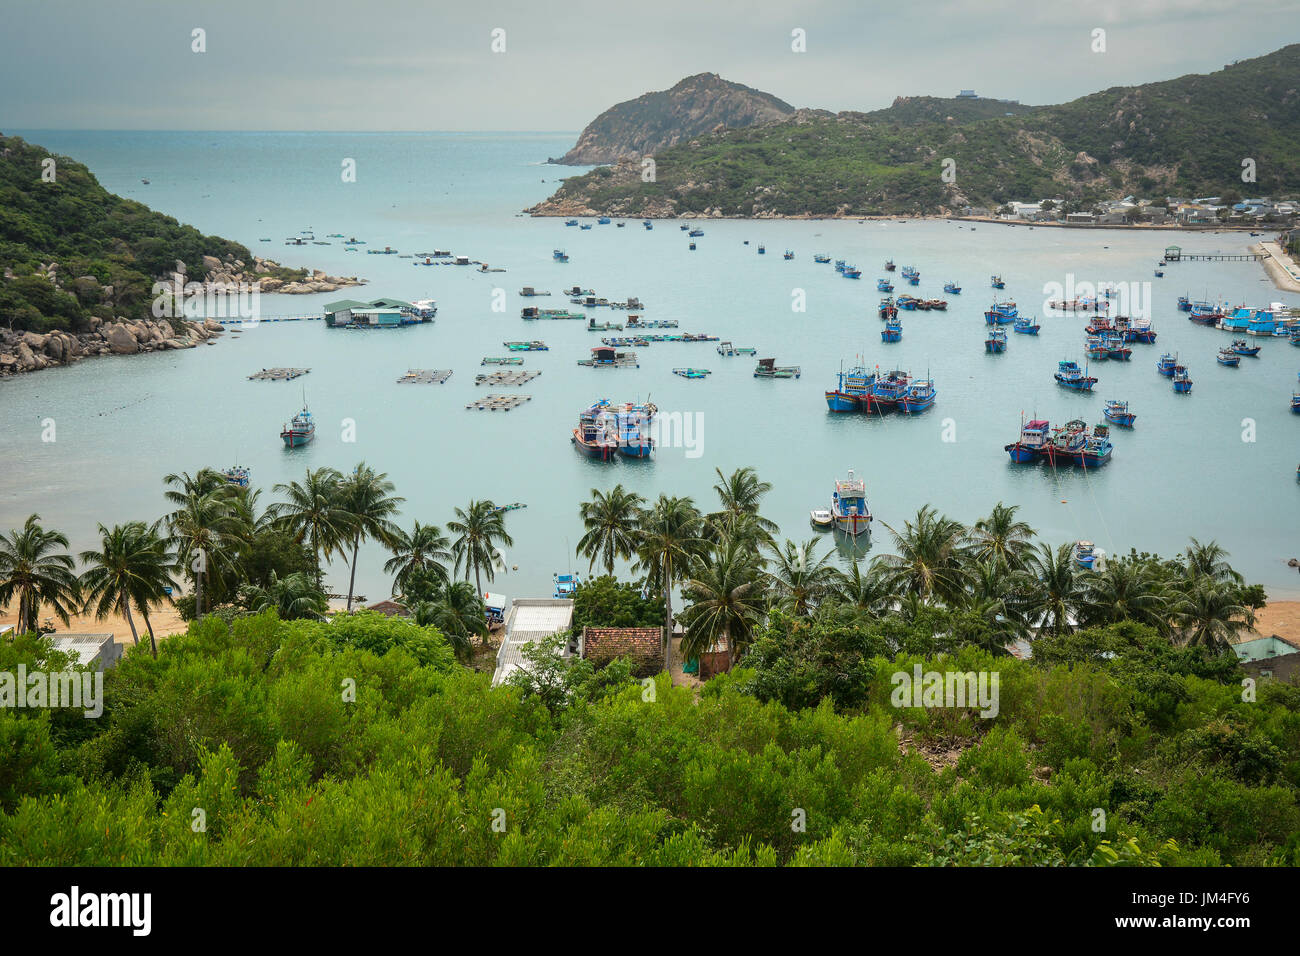 Seascape of vinh hy bay in phan rang vietnam vietnam coastline seascape of vinh hy bay in phan rang vietnam vietnam coastline along the gulf of tonkin the south china sea and the gulf of thailand publicscrutiny Images